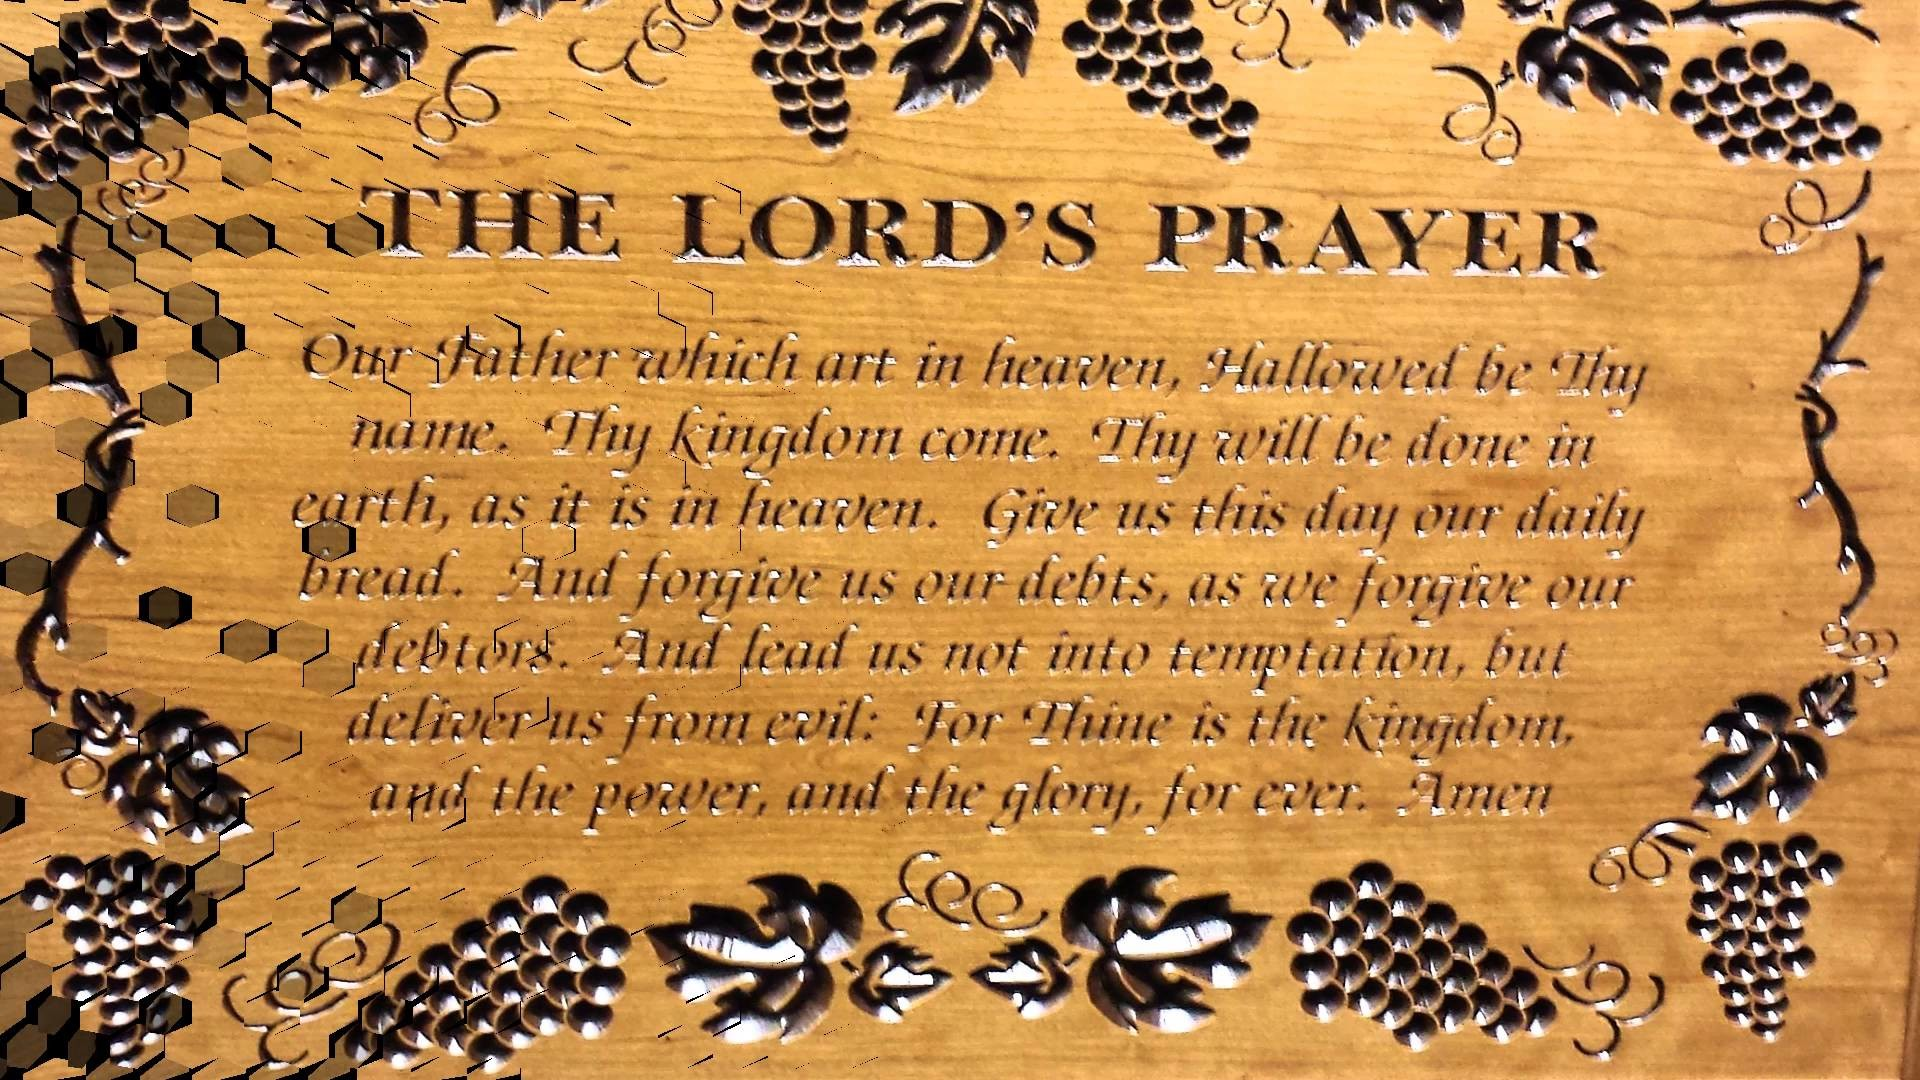 lords prayer wallpaper 58 images